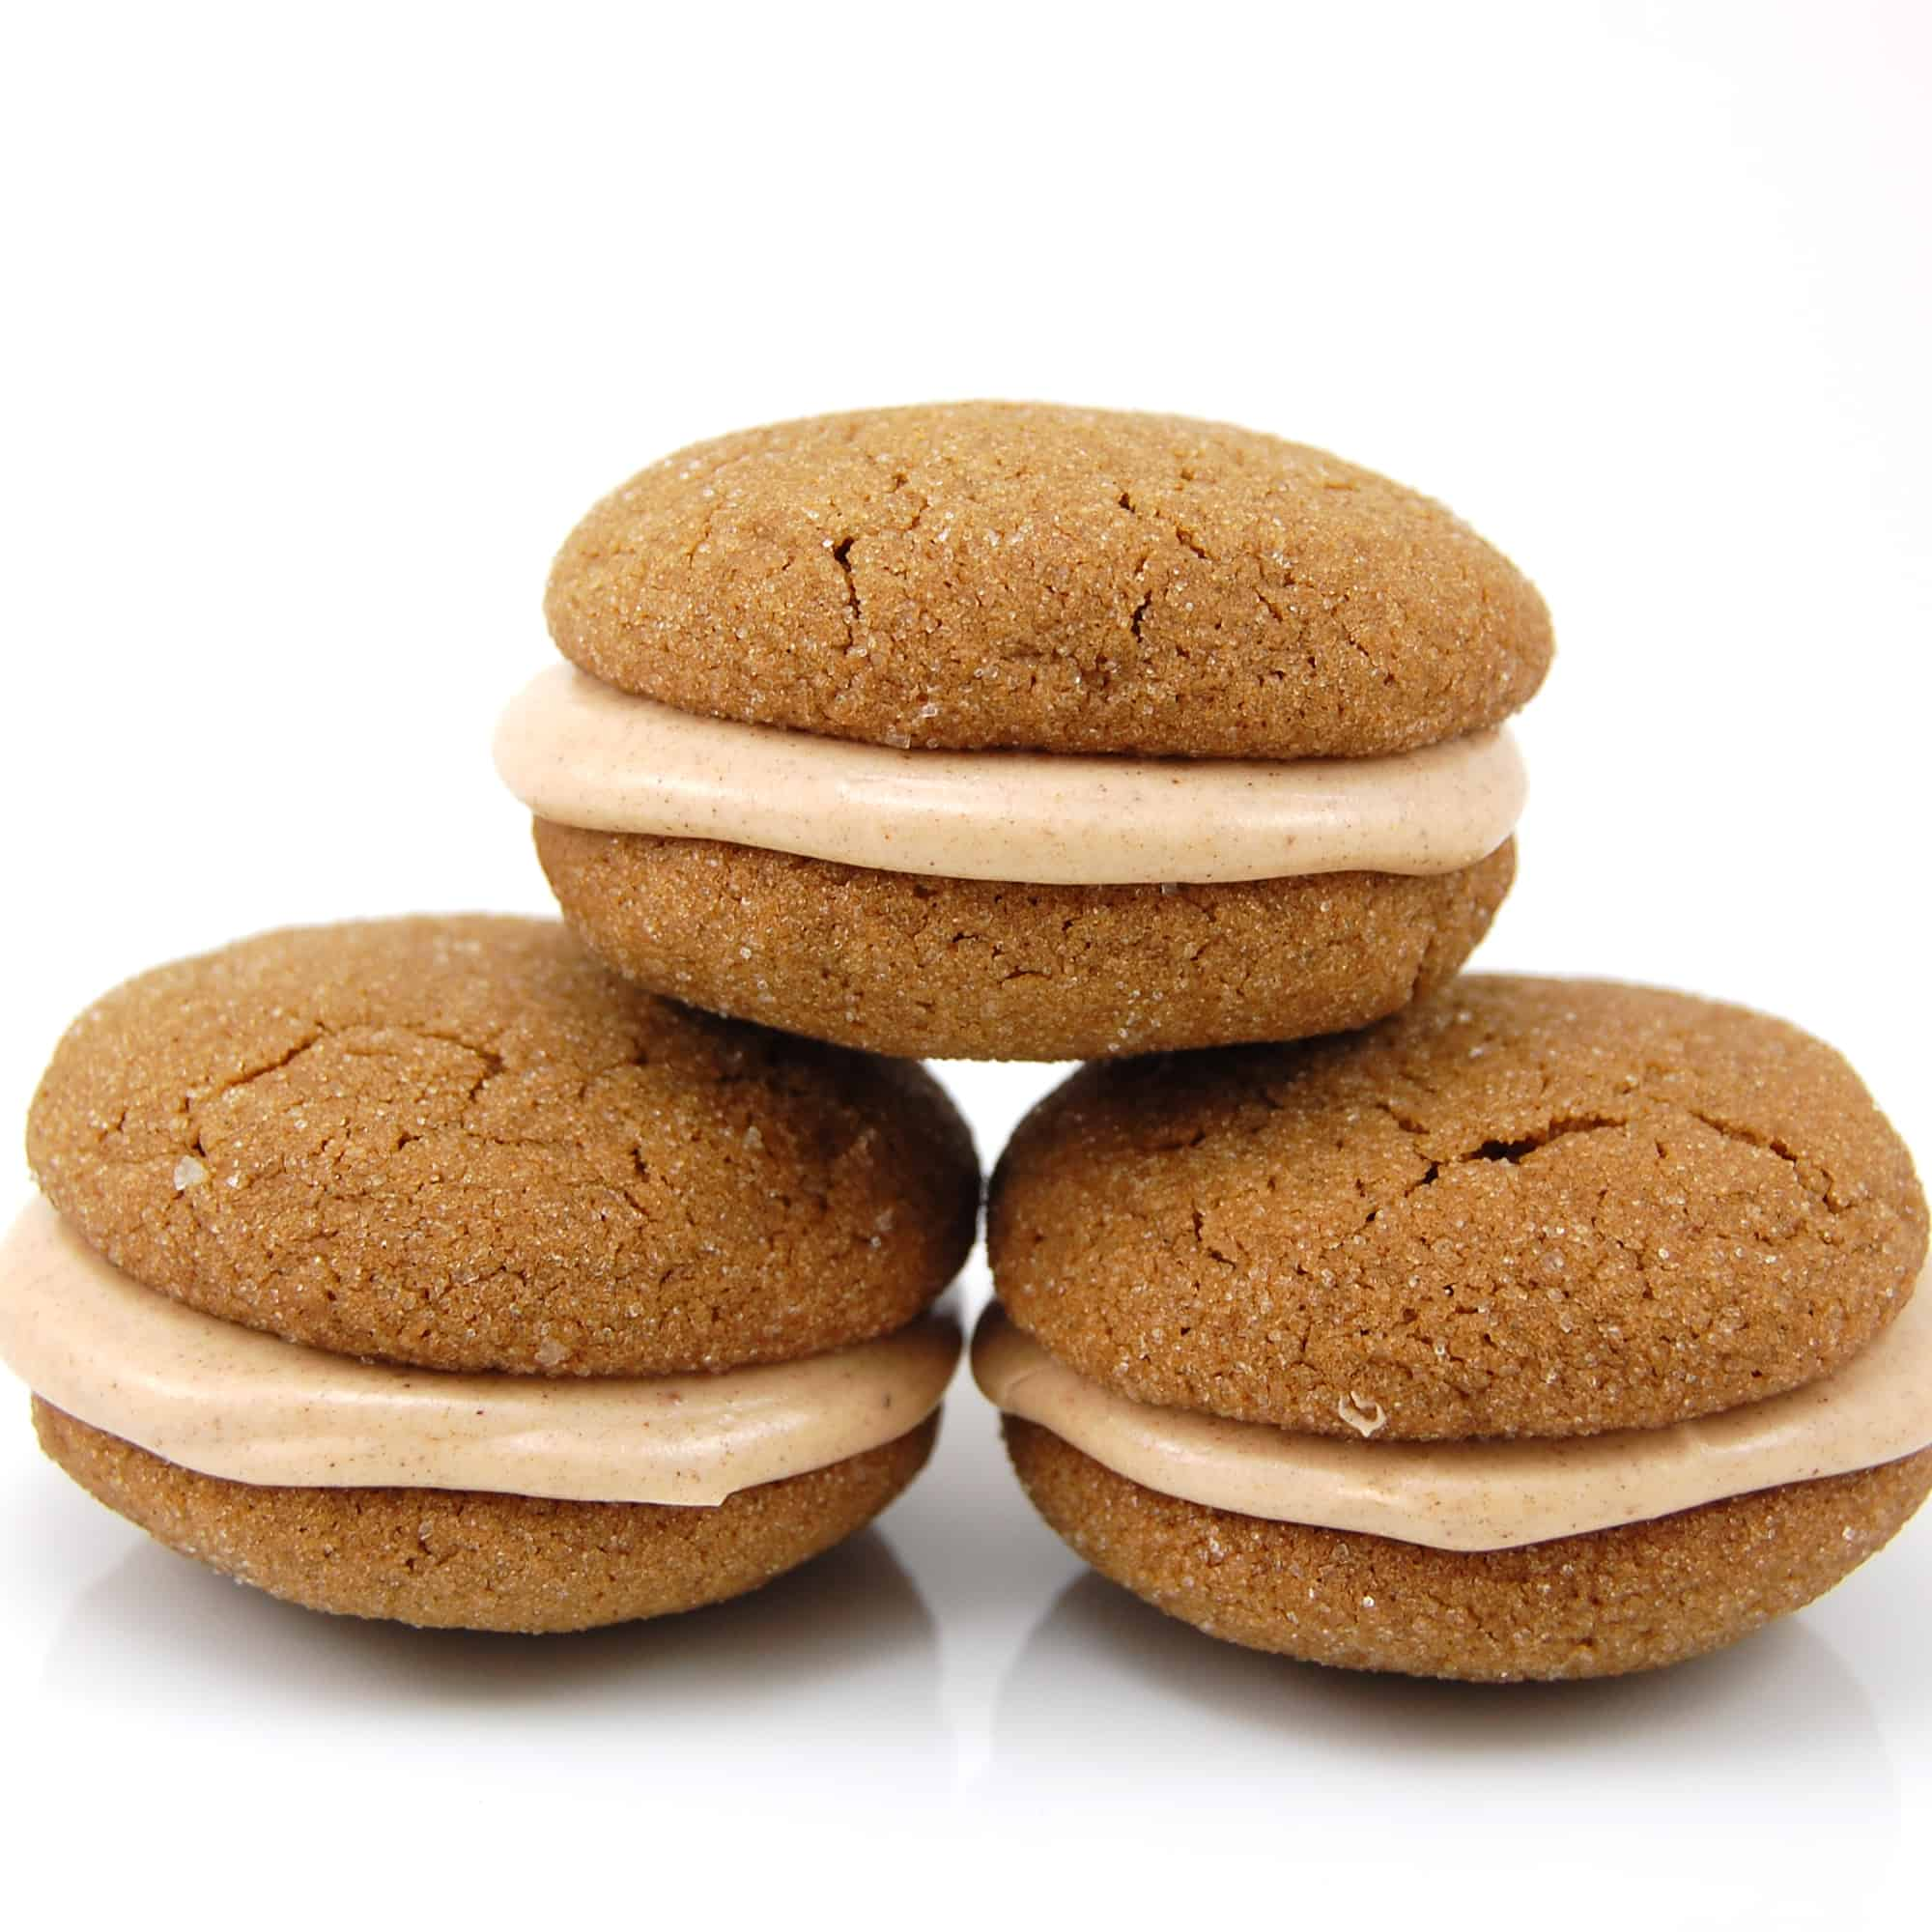 Ginger Cookies Sandwiches with Cinnamon Filling